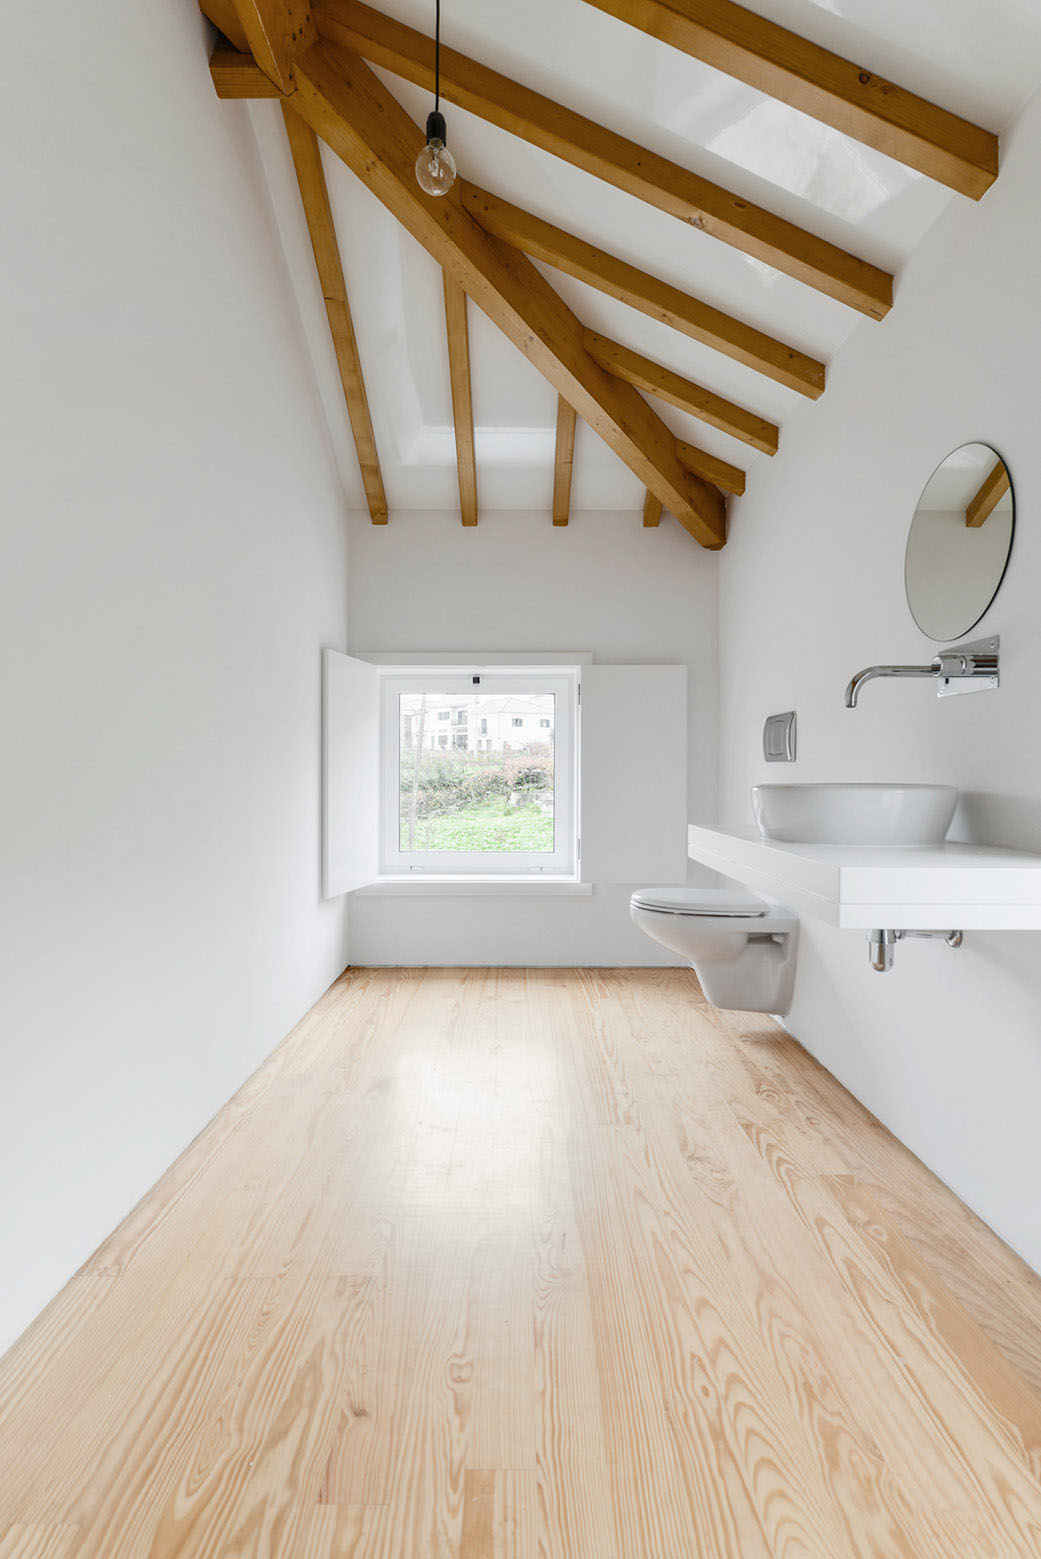 Minimalist Bathroom with Wood Beams and Natural Wood Floor